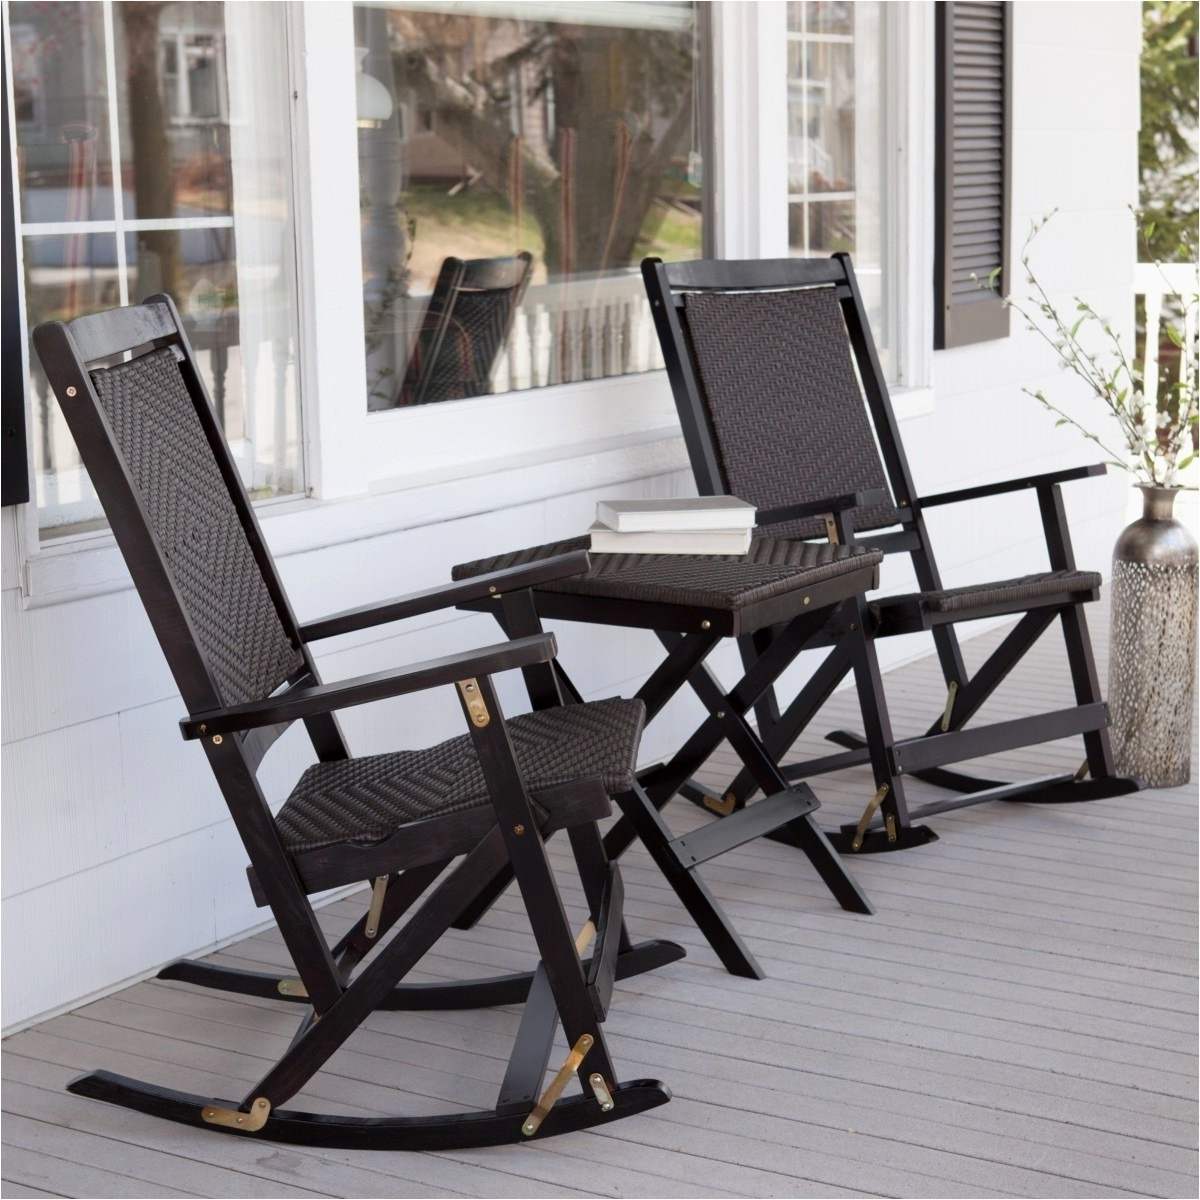 Well Known Resin Outdoor Rocking Chairs Lovely Patio Chairs Plastic Muskoka Throughout Outdoor Rocking Chairs With Table (View 6 of 15)